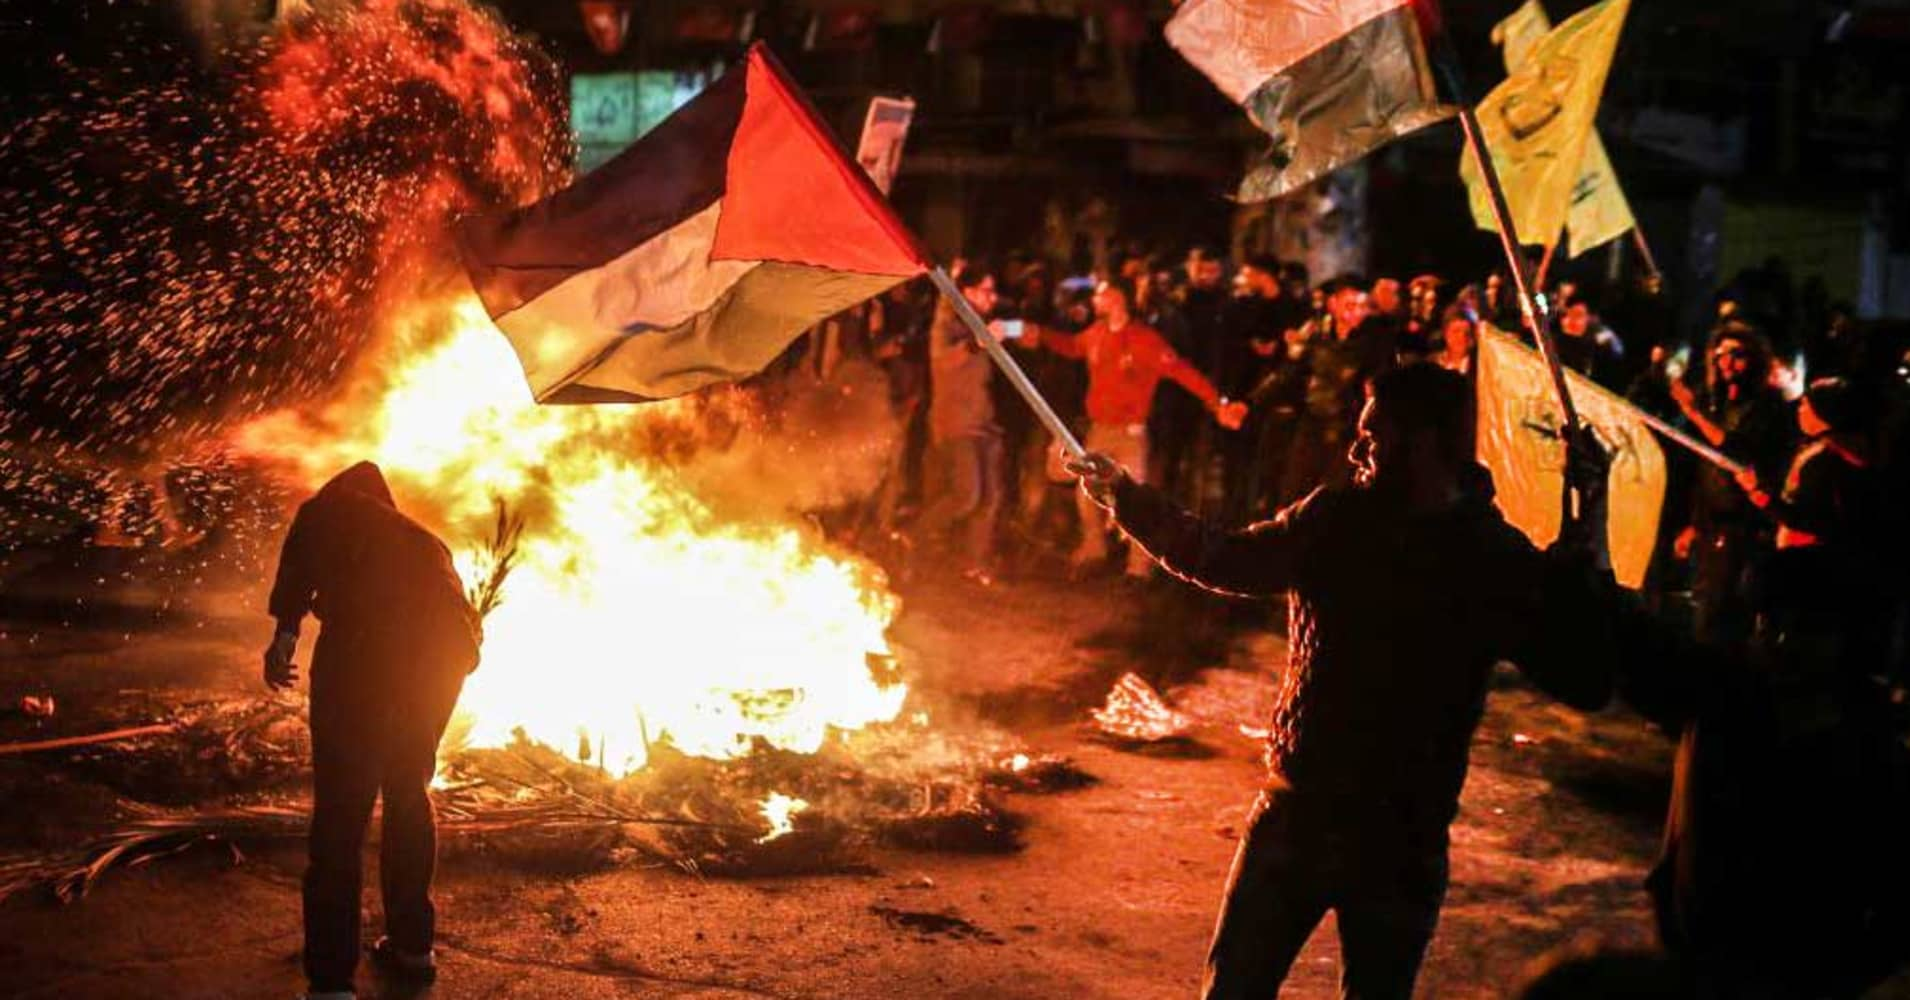 Demonstrators burn tires, shout slogans and hold Palestinian flags during a protest against US President Donald Trump's recognition of Jerusalem as Israel's capital, in Gaza City, Gaza on December 07, 2017.